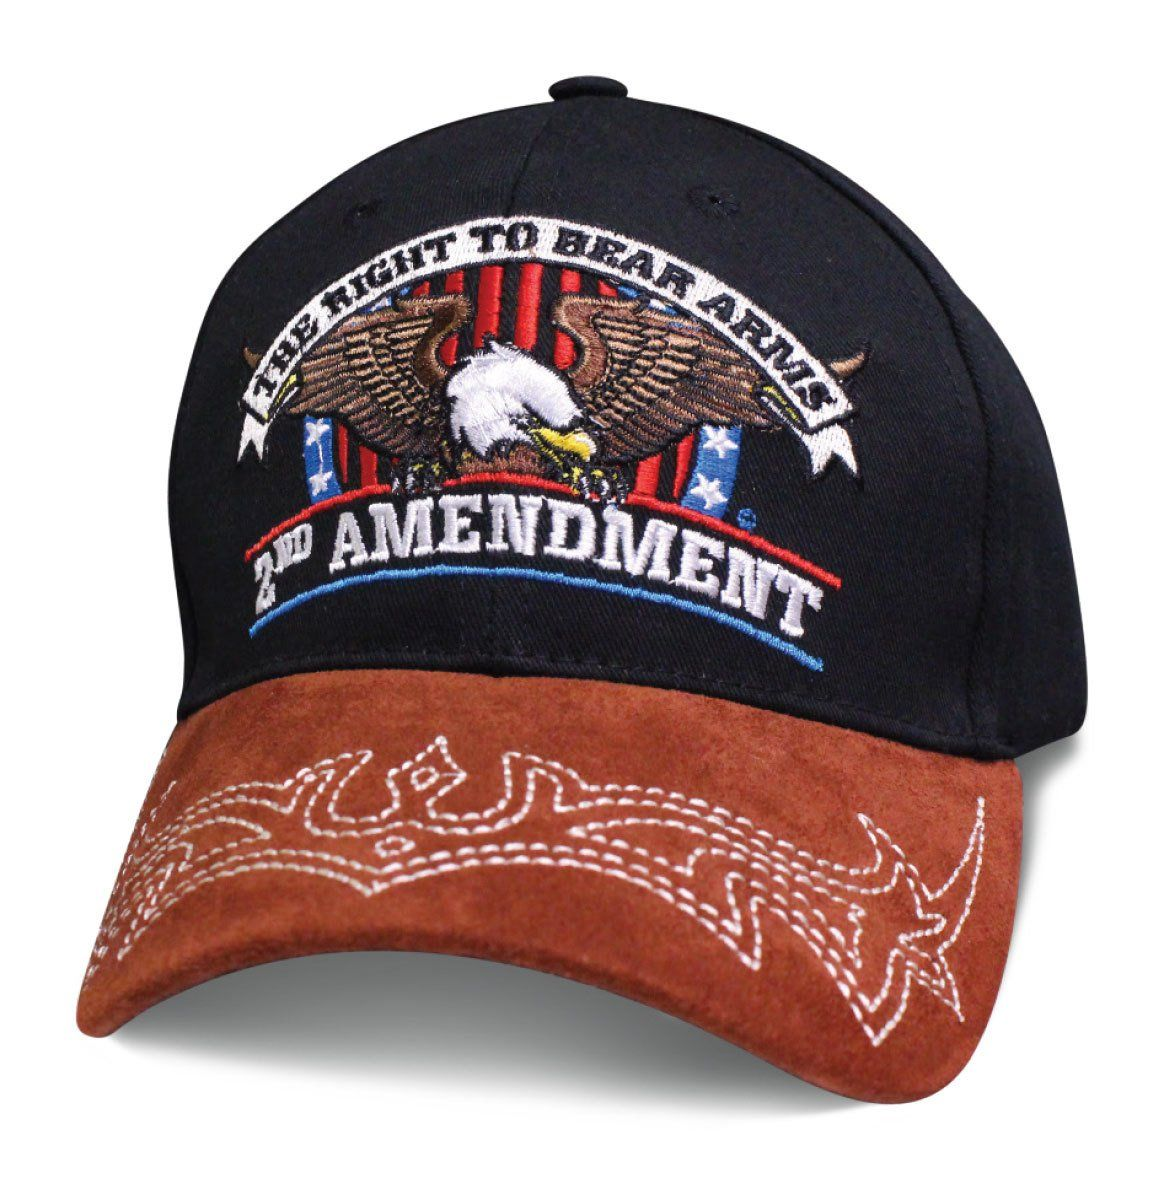 a469d33a5 Mens Patriotic Hat THE RIGHT TO BEAR ARMS 2ND AMENDMENT with Eagle ...